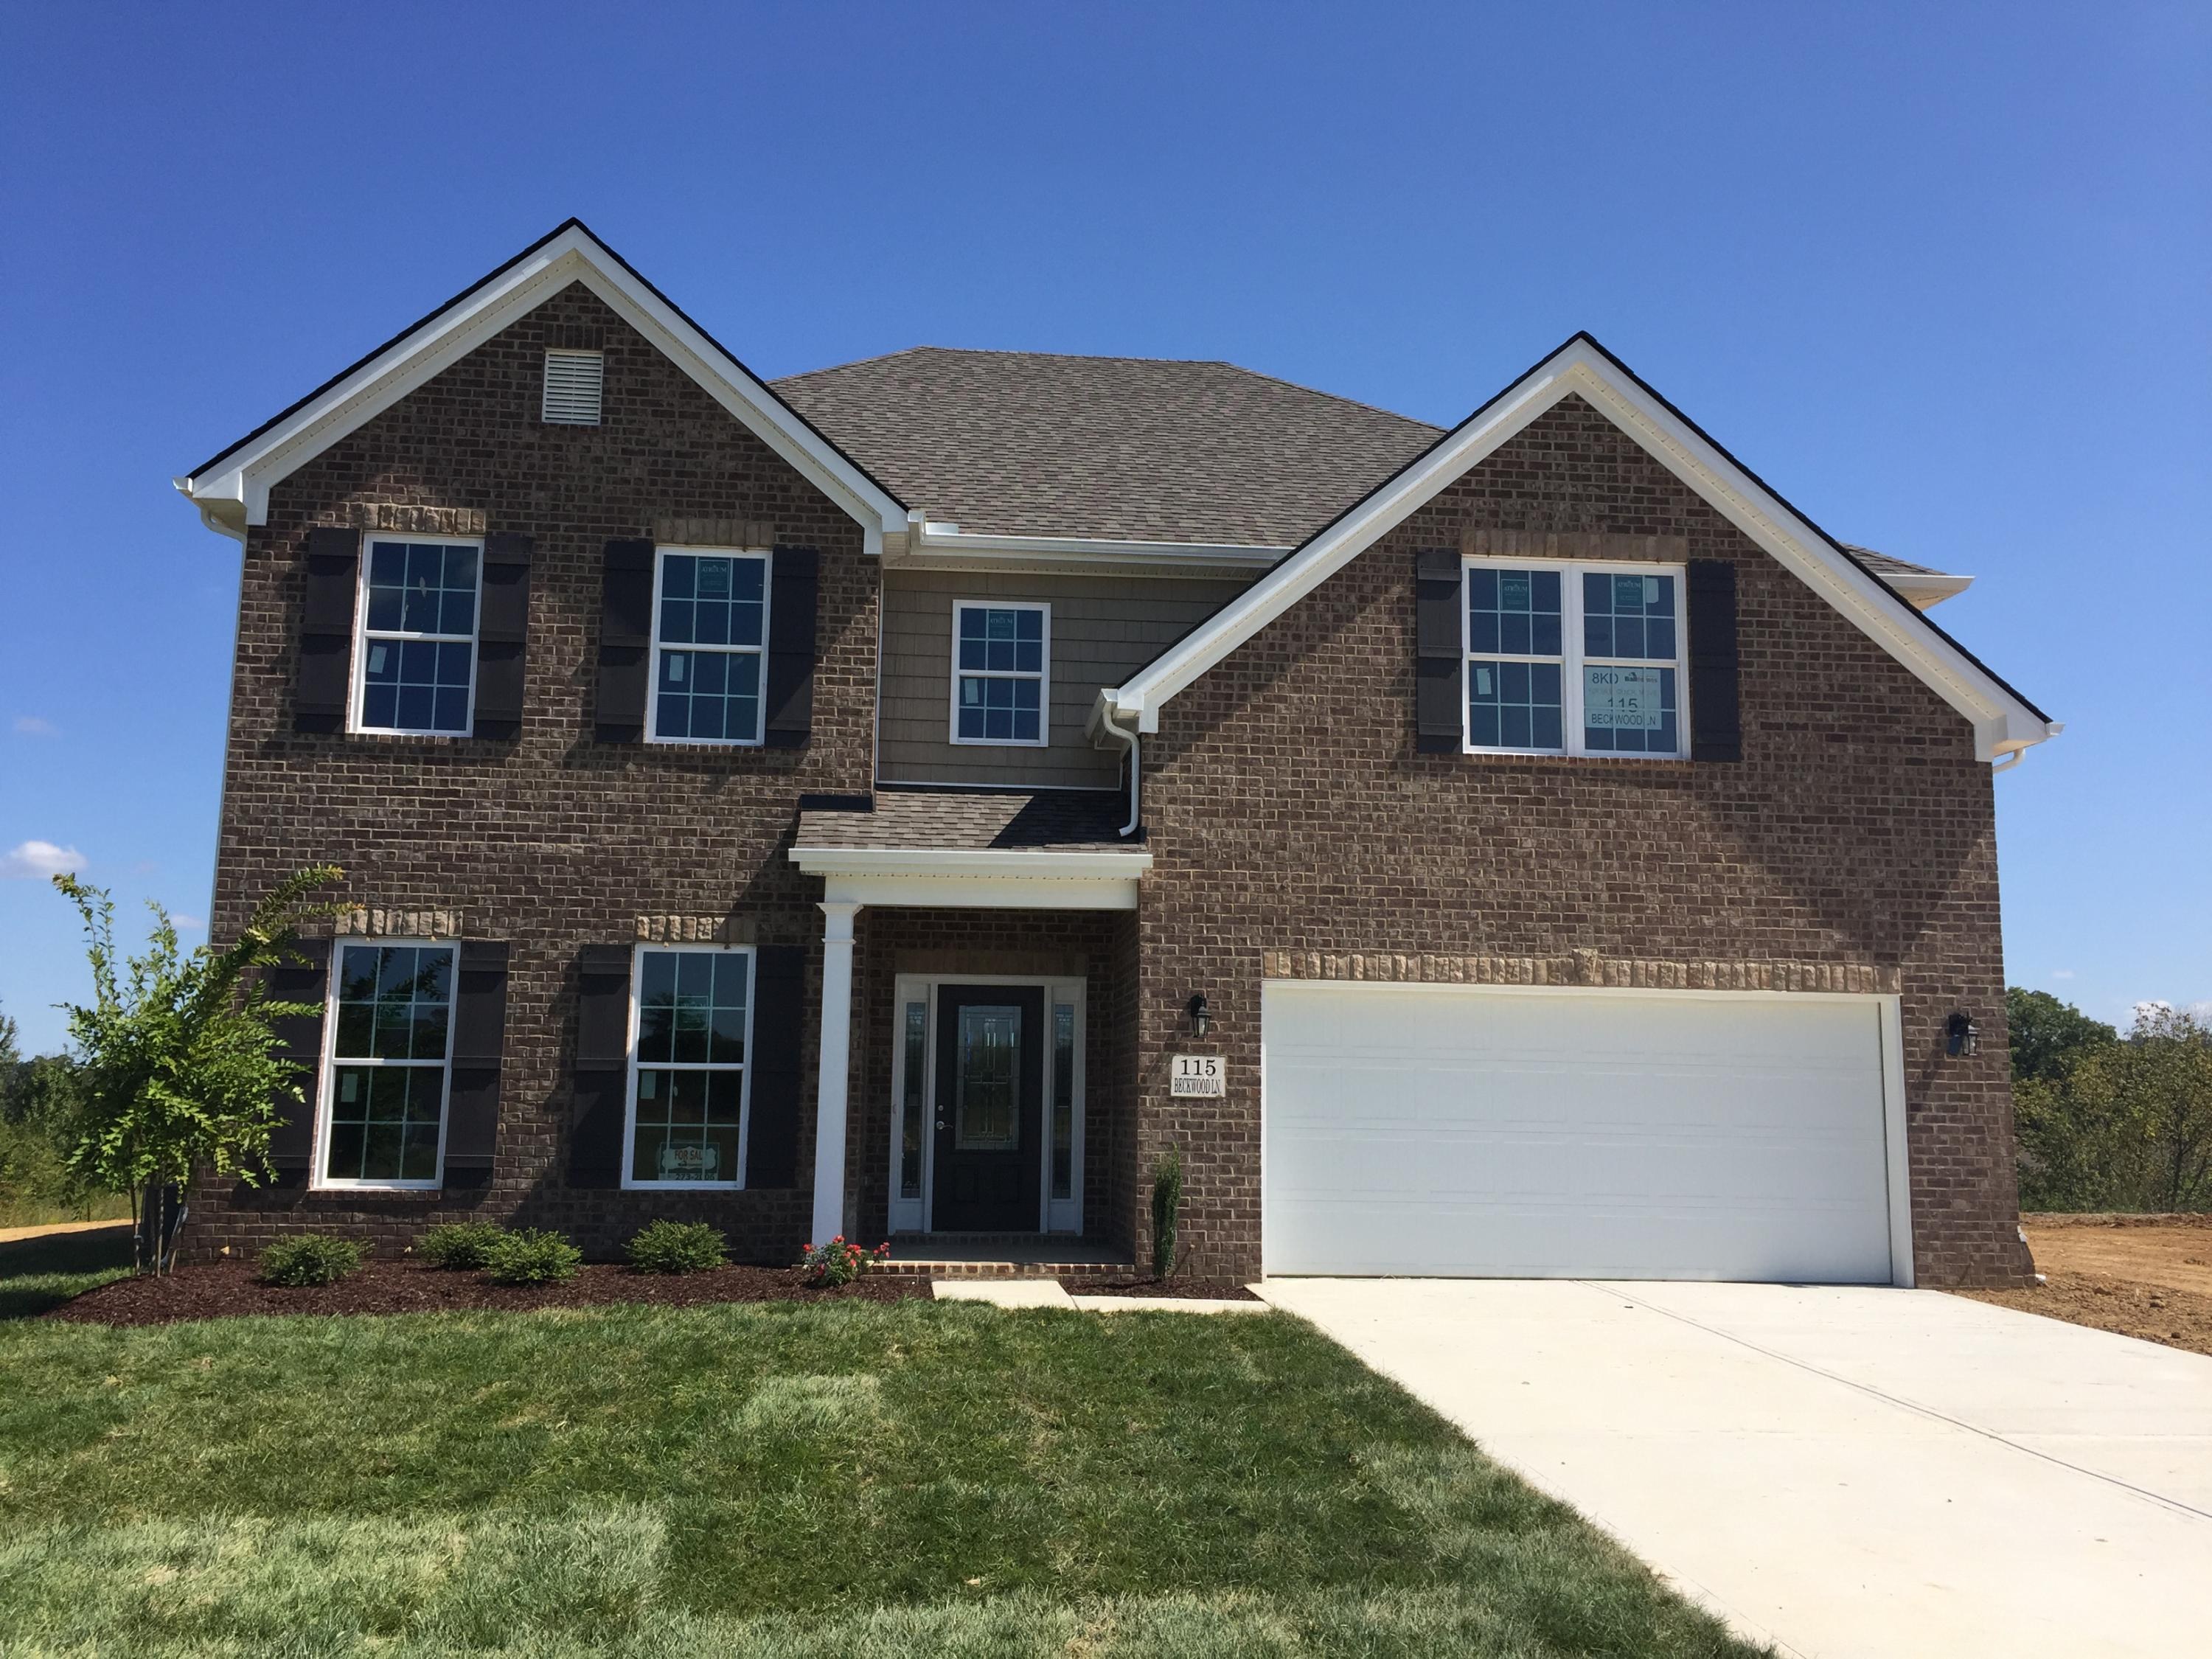 115 BECKWOOD LANE, MARYVILLE, TN 37801